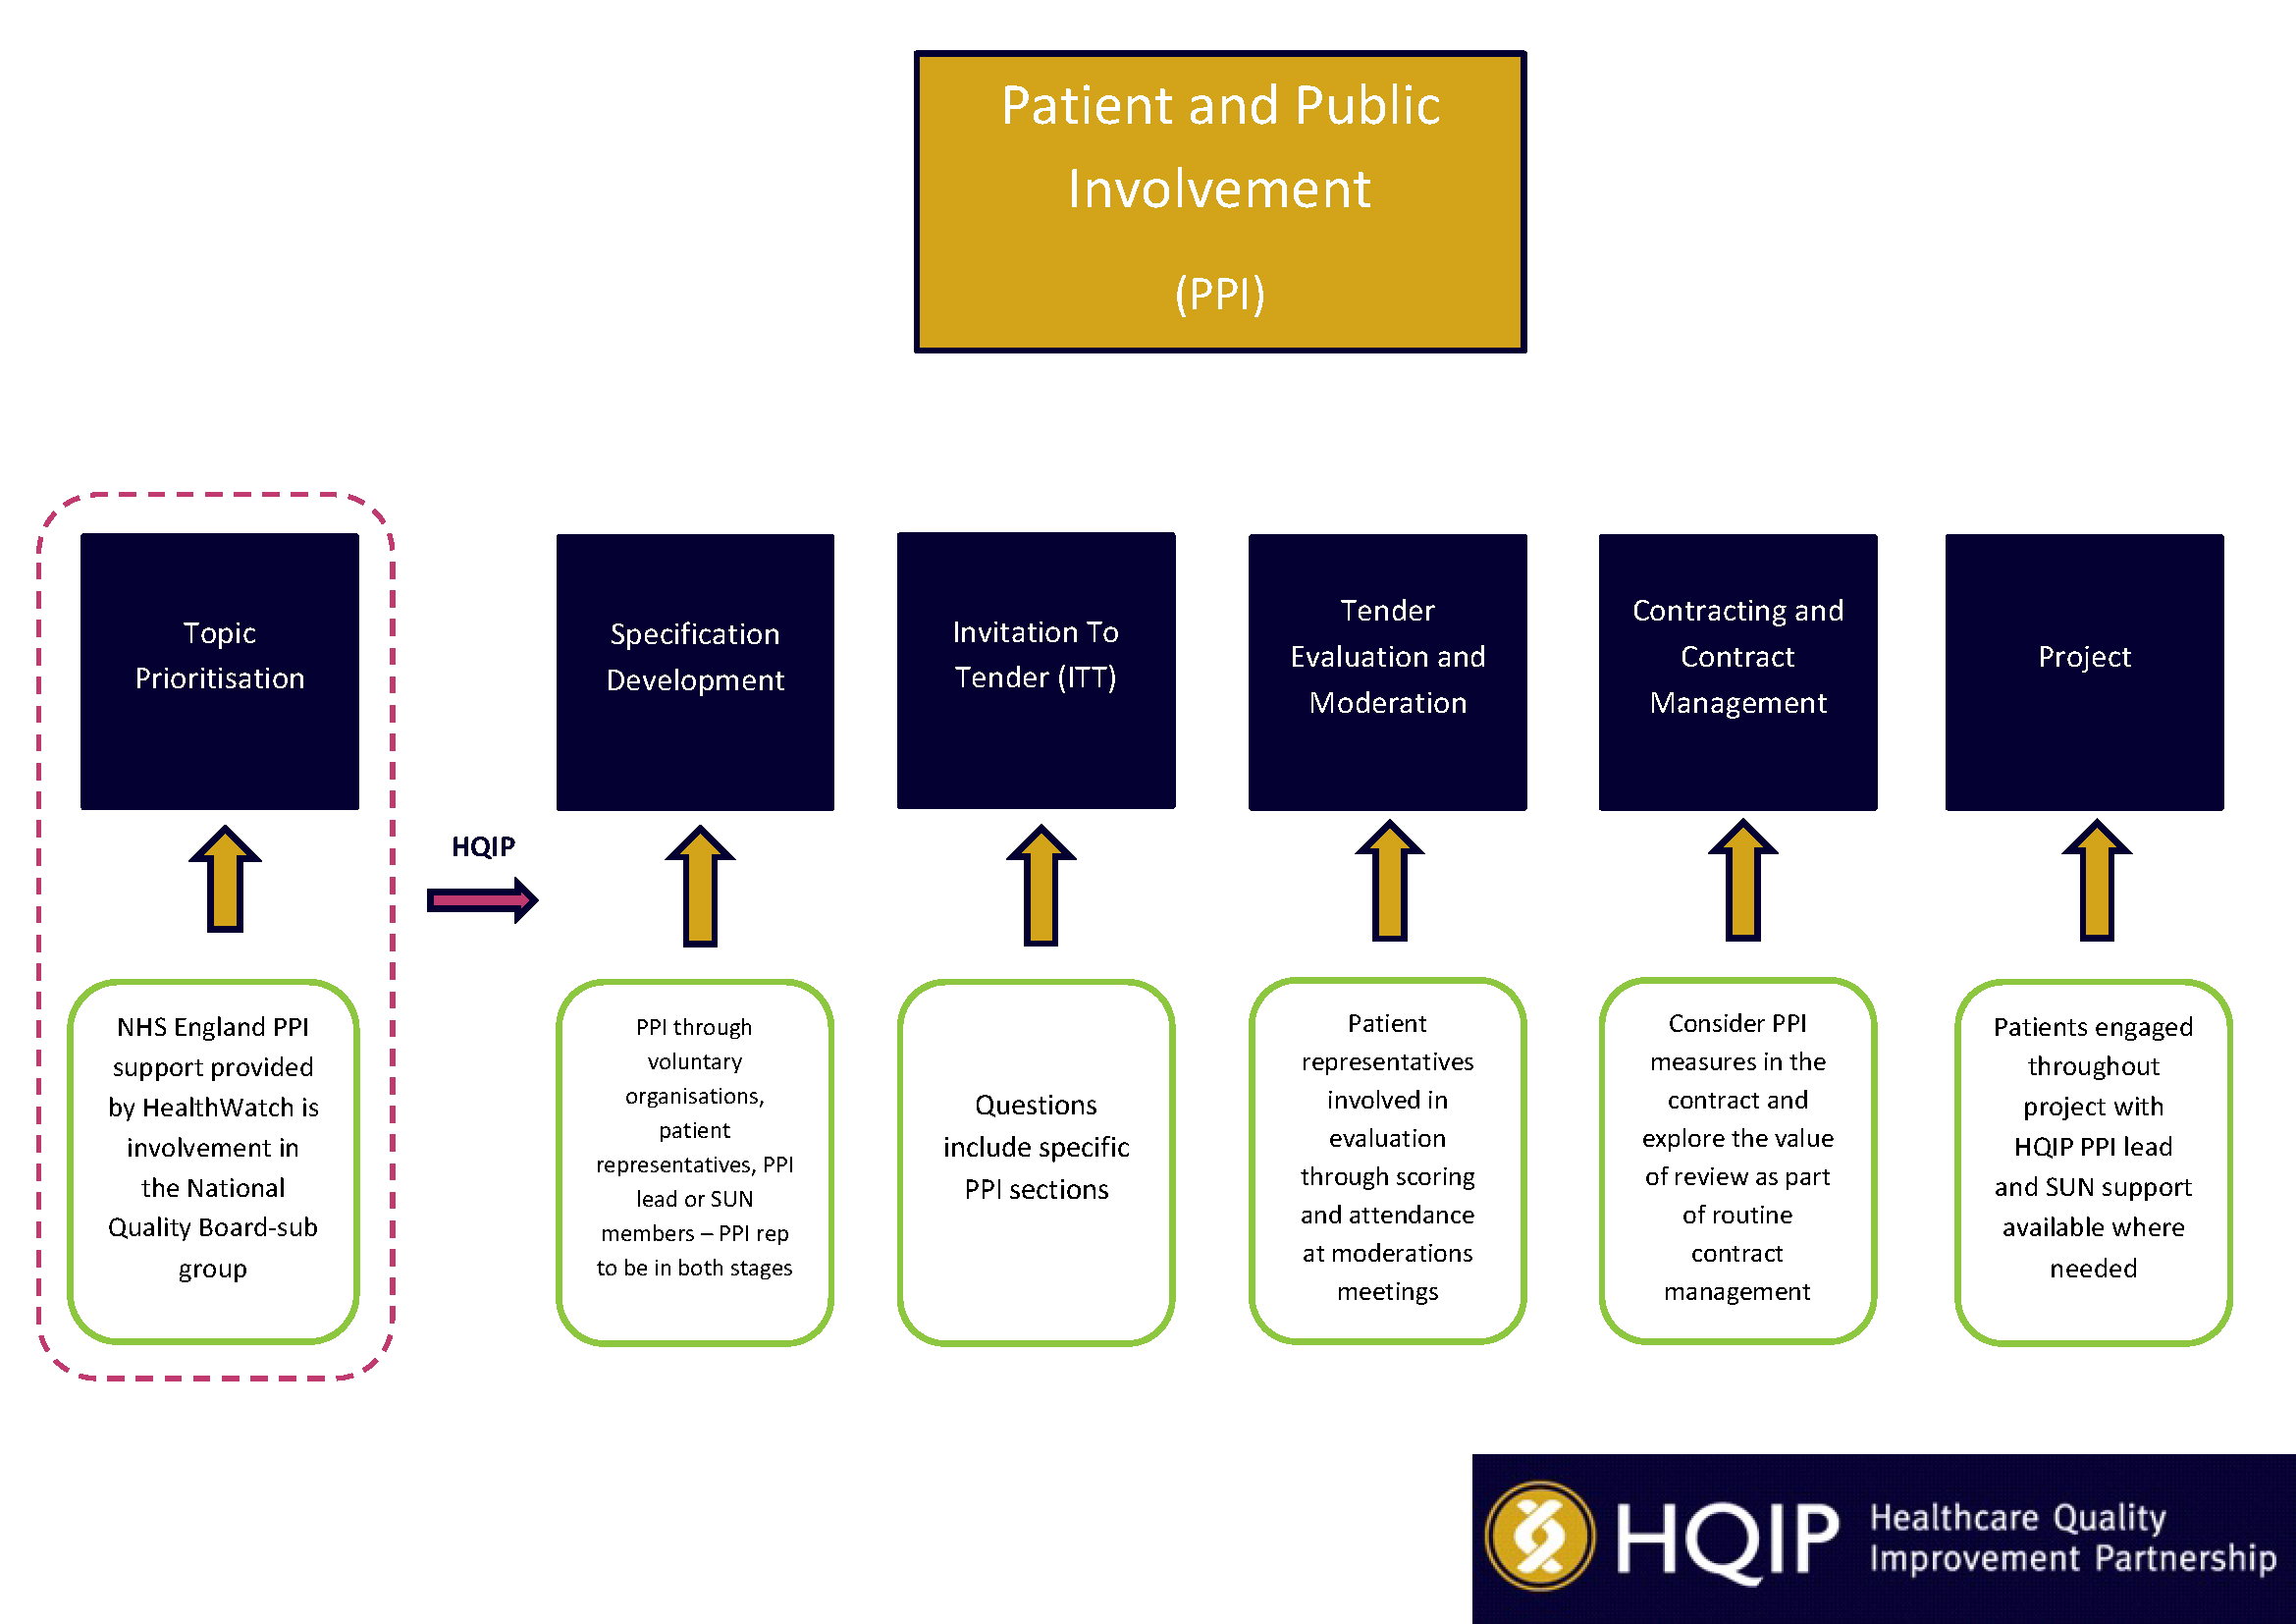 Patient and Public Involvement in the HQIP Commissioning Process